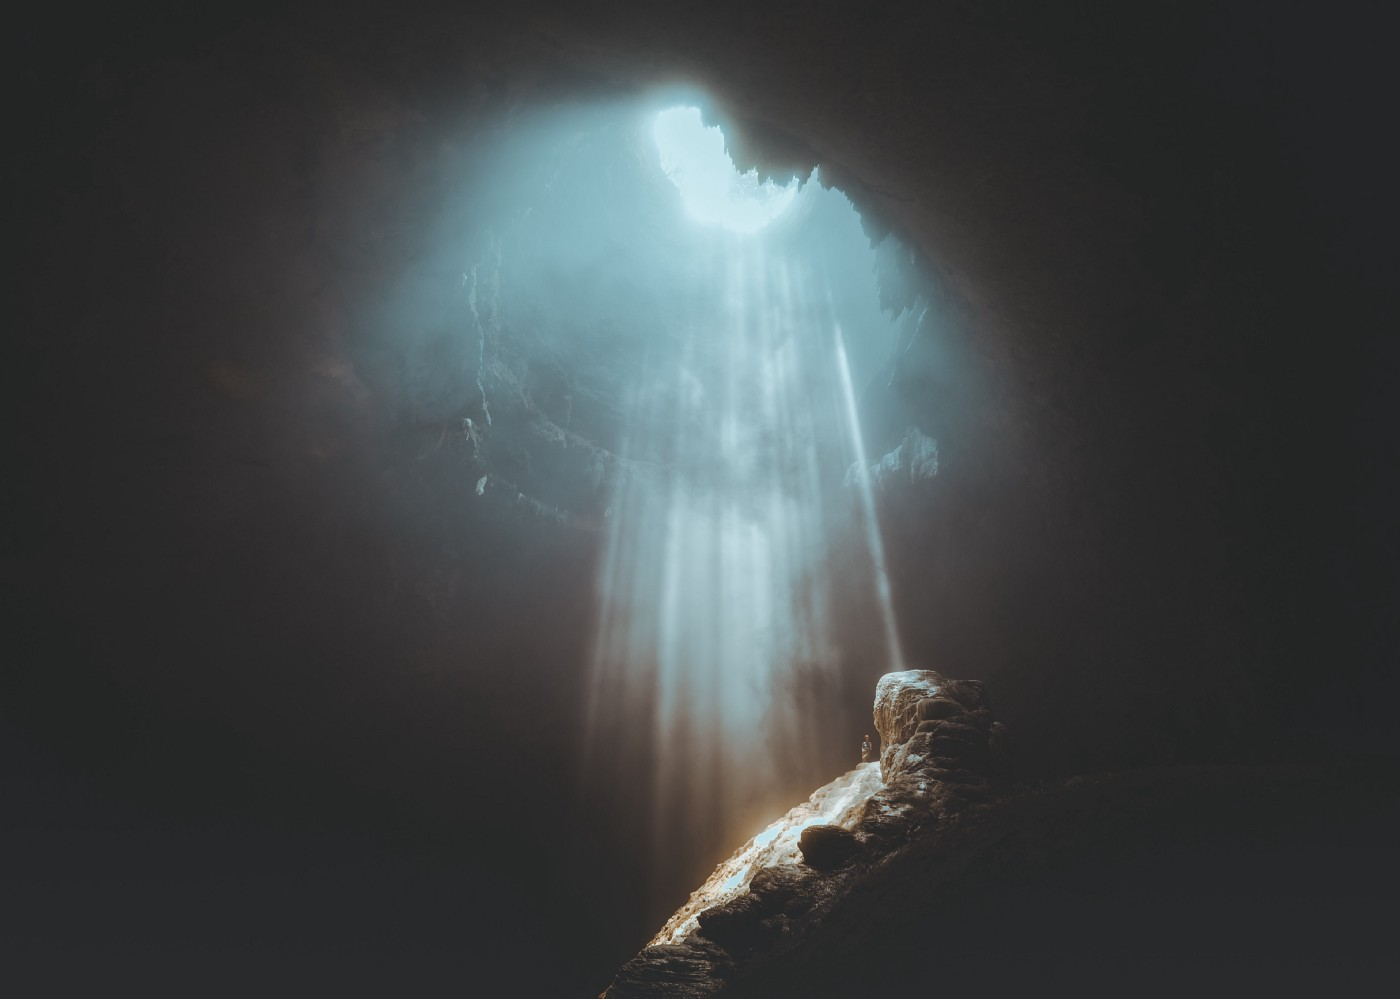 A photo of a cave. A stream of light is shining down on the opening of the cave, revealing its rocky bottom.